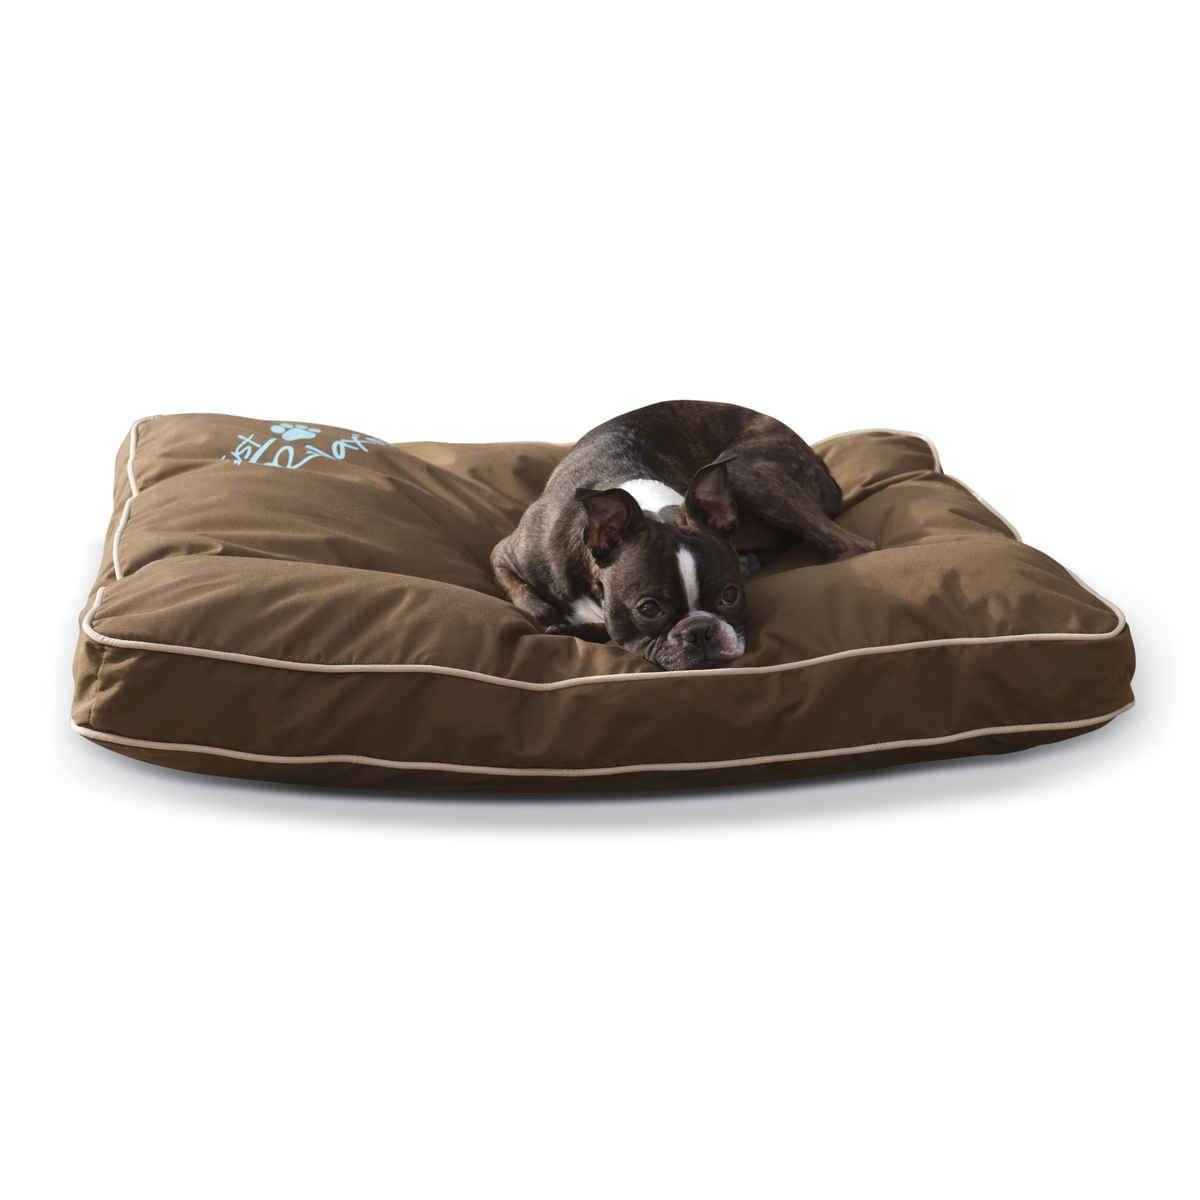 Just Relaxin' Indoor/Outdoor Pet Bed Medium Chocolate 28″ x 36″ x 3.5″